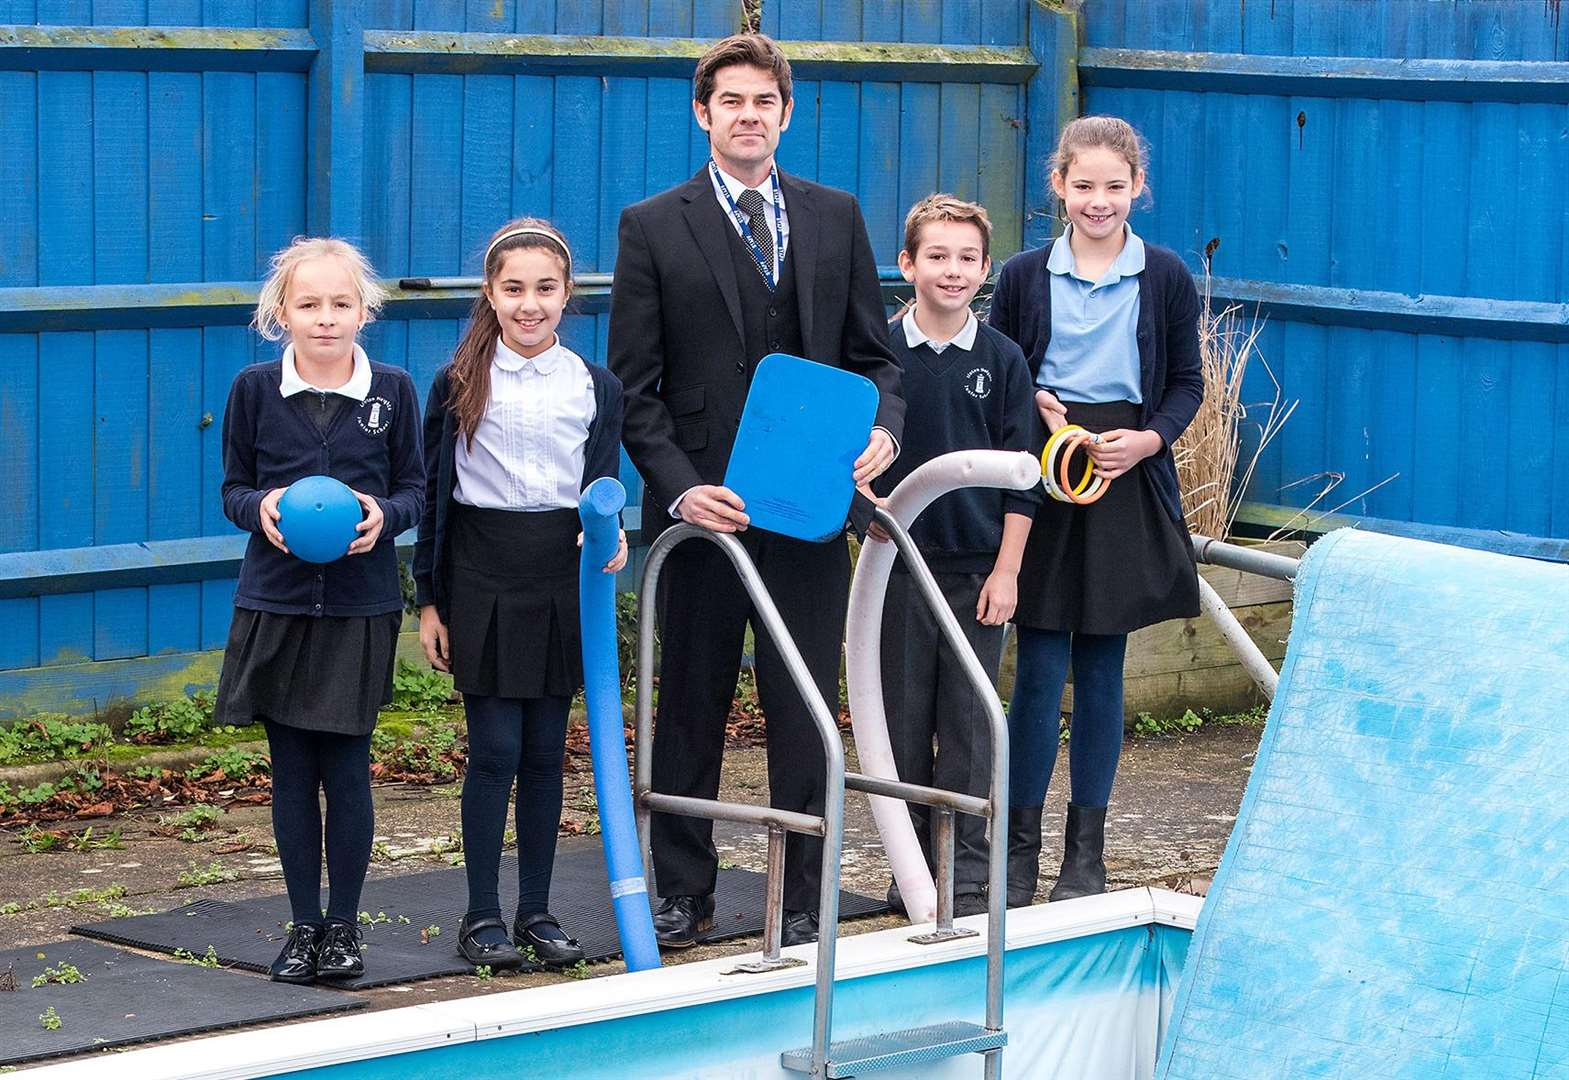 Fund-raising drive to save future of pool